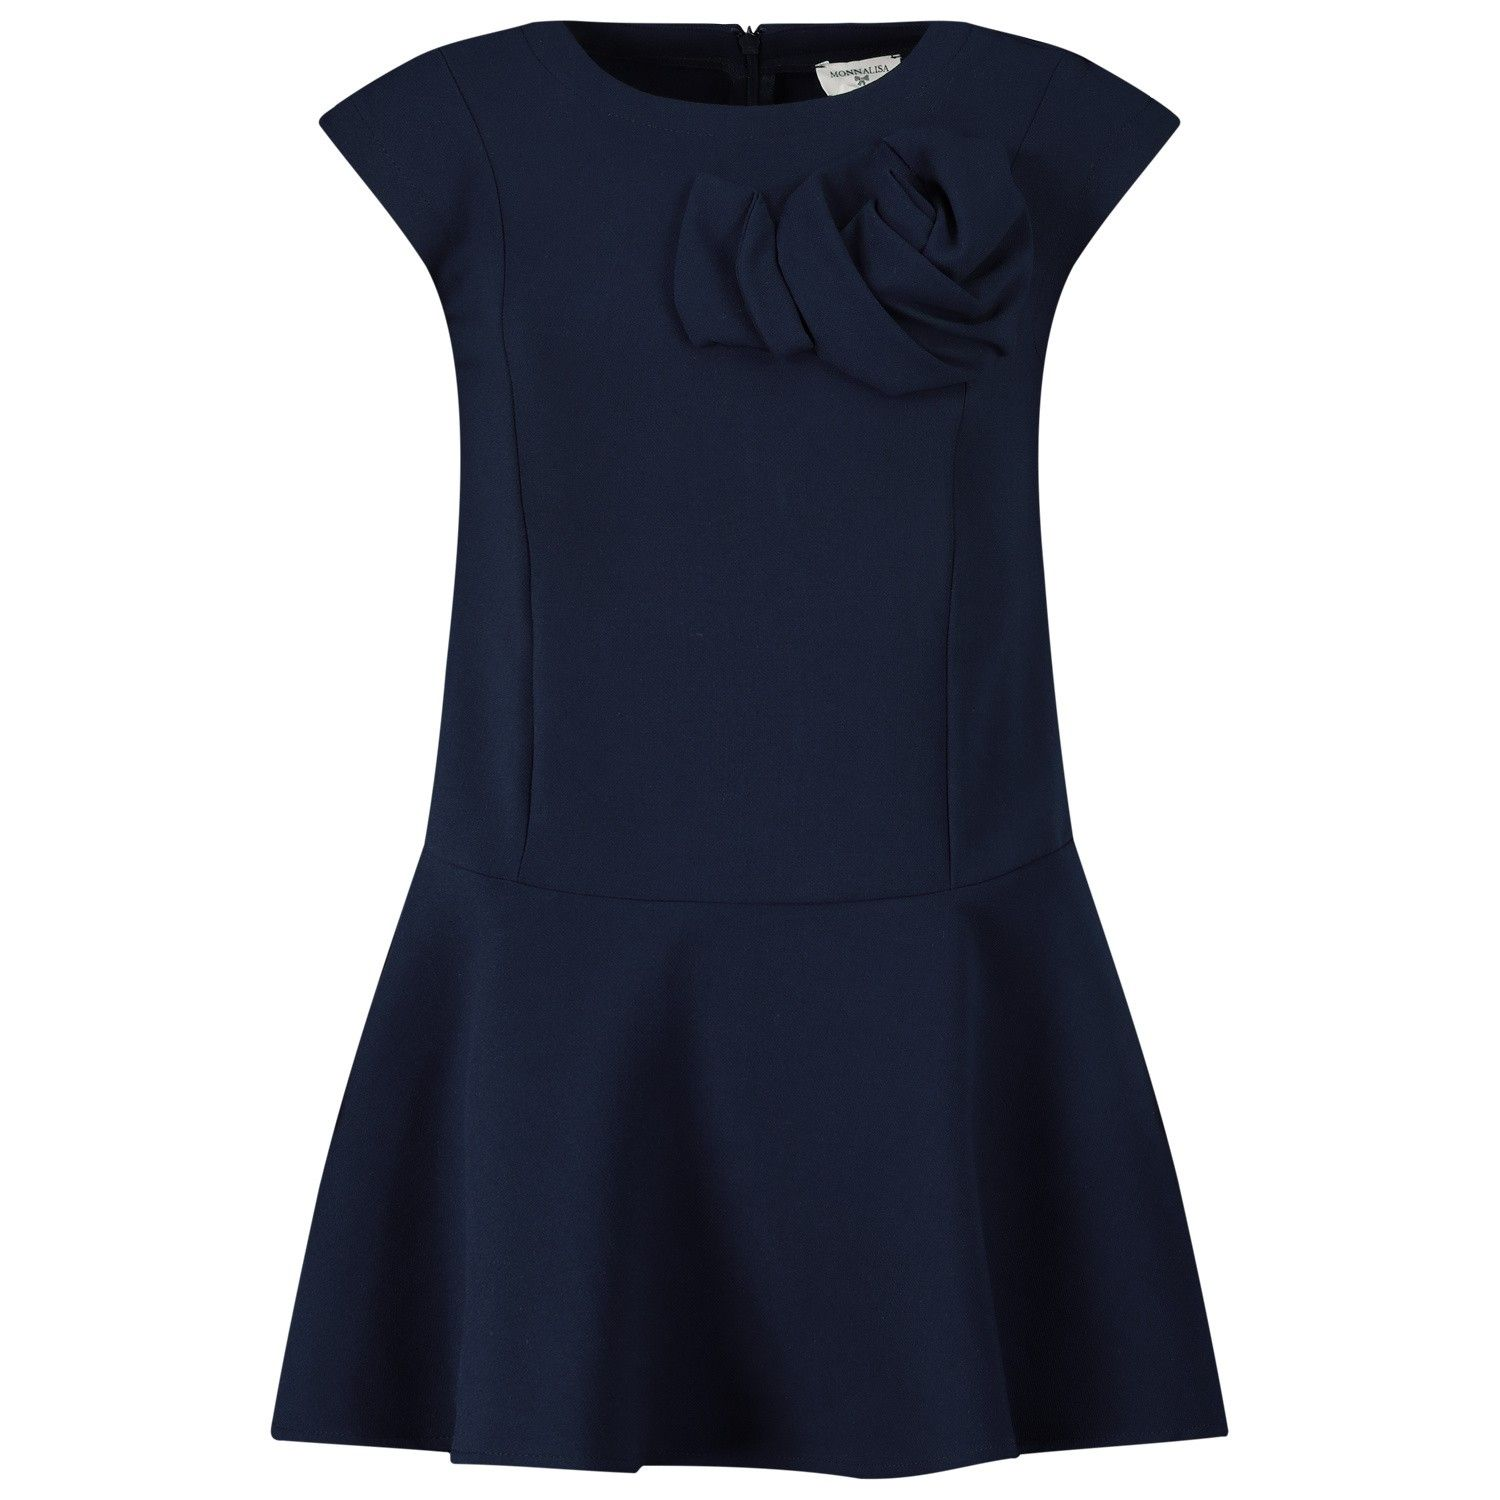 Picture of MonnaLisa 176904F2 kids dress navy